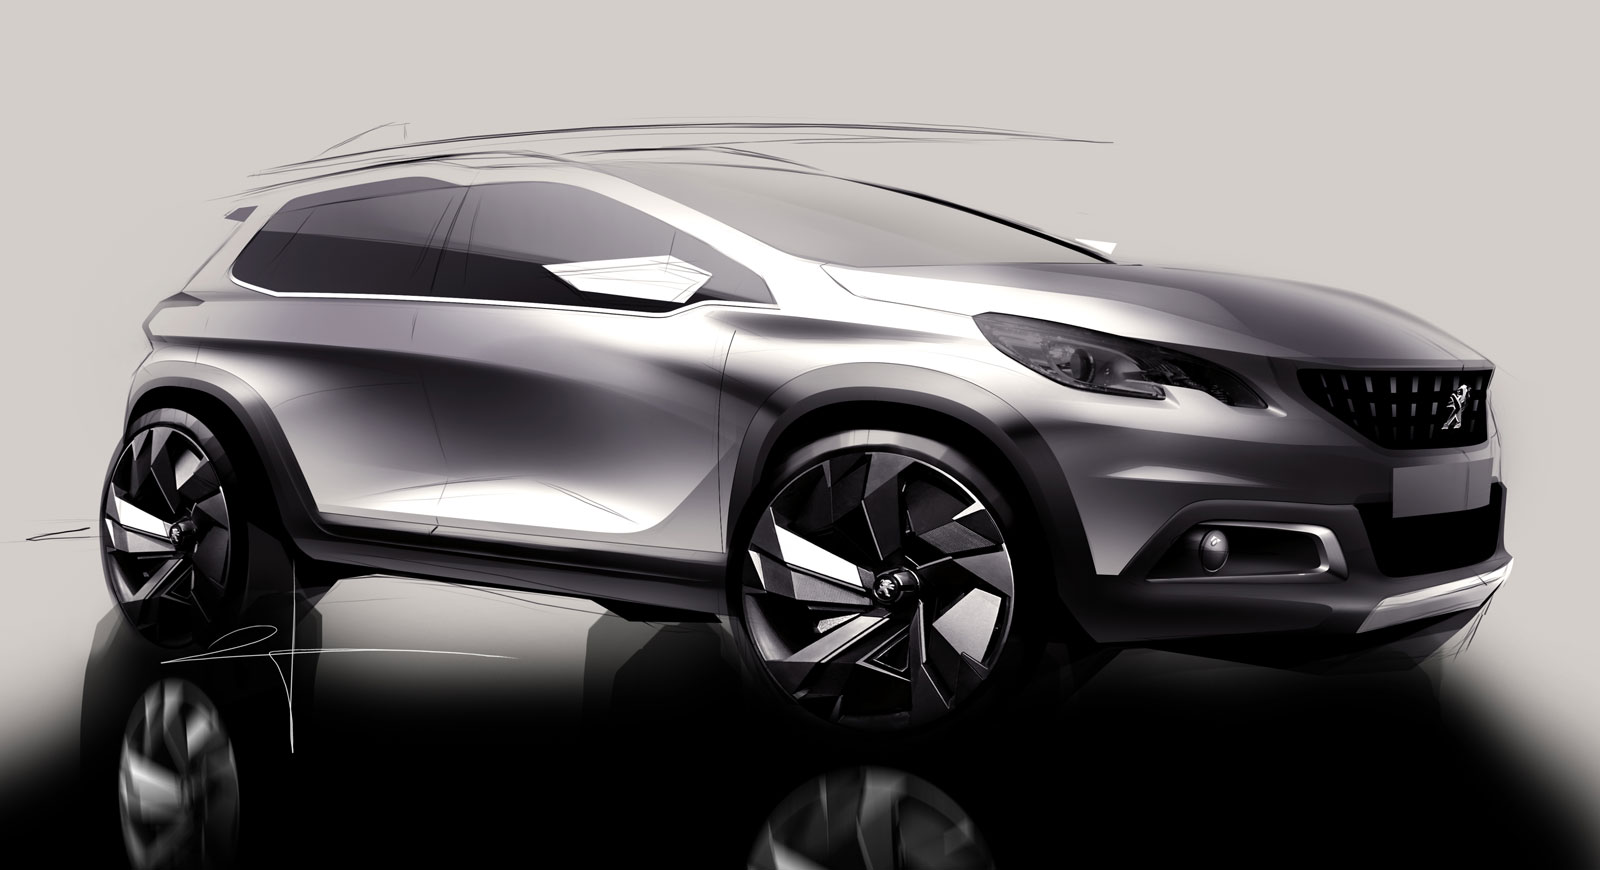 Peugeot Unveils Restyled 2008 Car Body Design